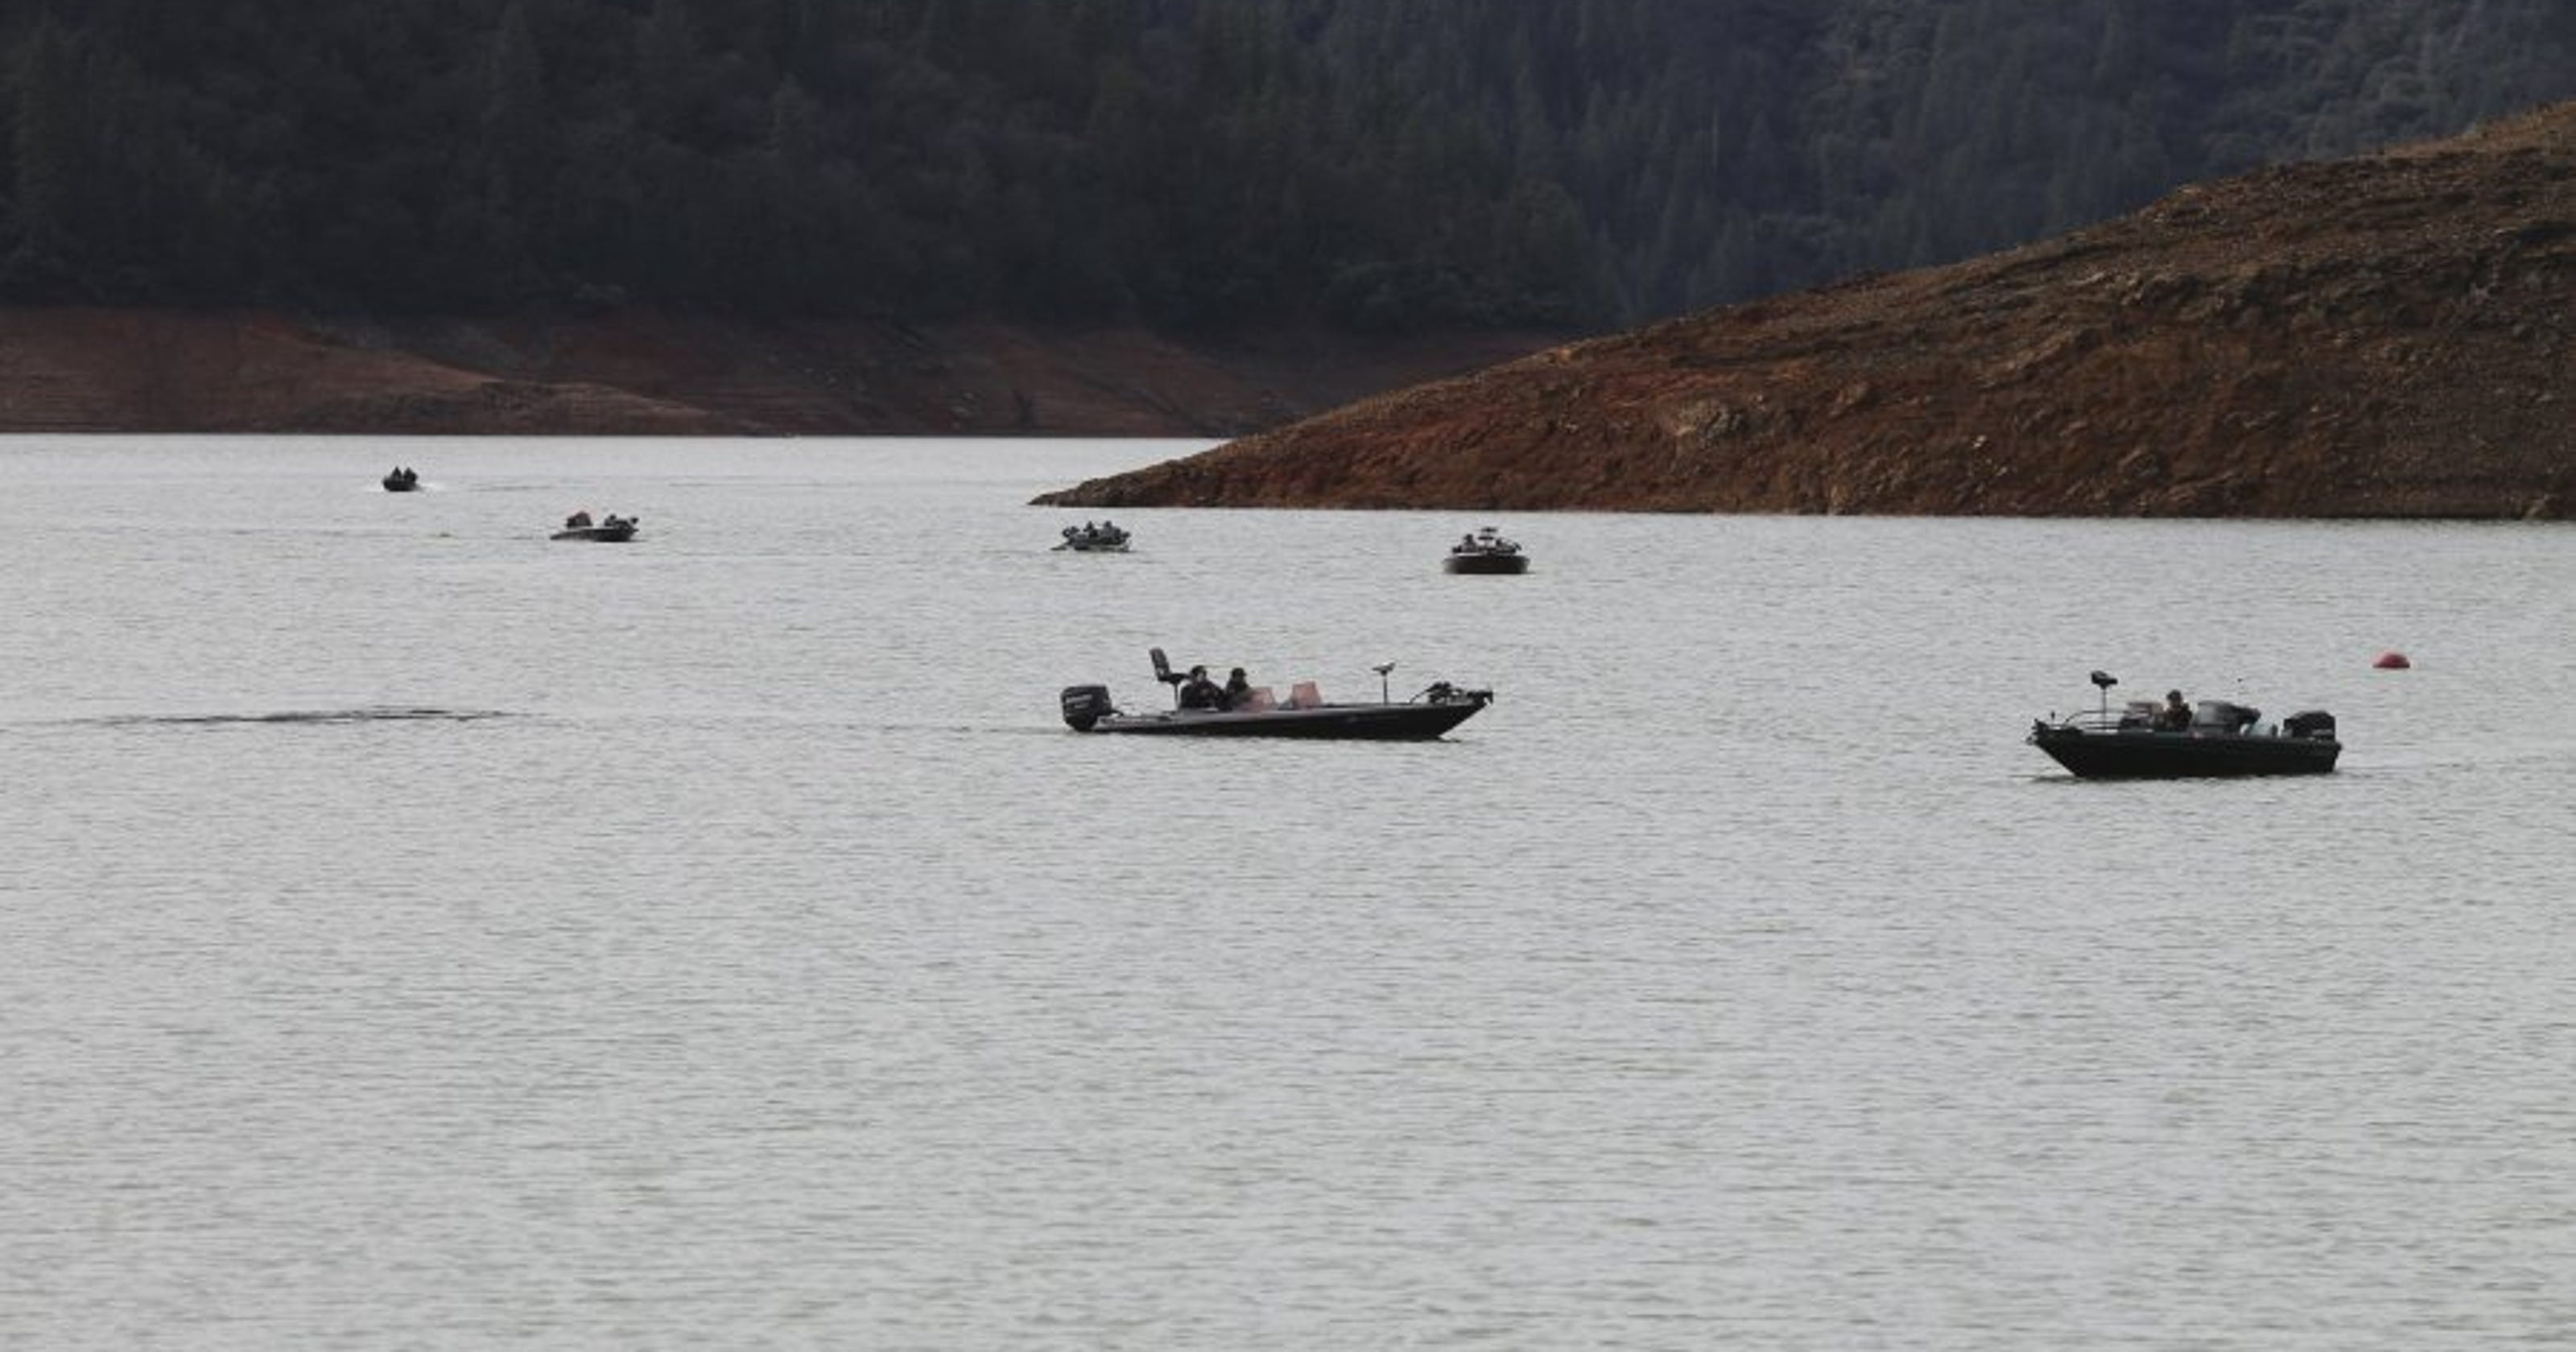 Club bass fishing is coming to Simpson University in Redding